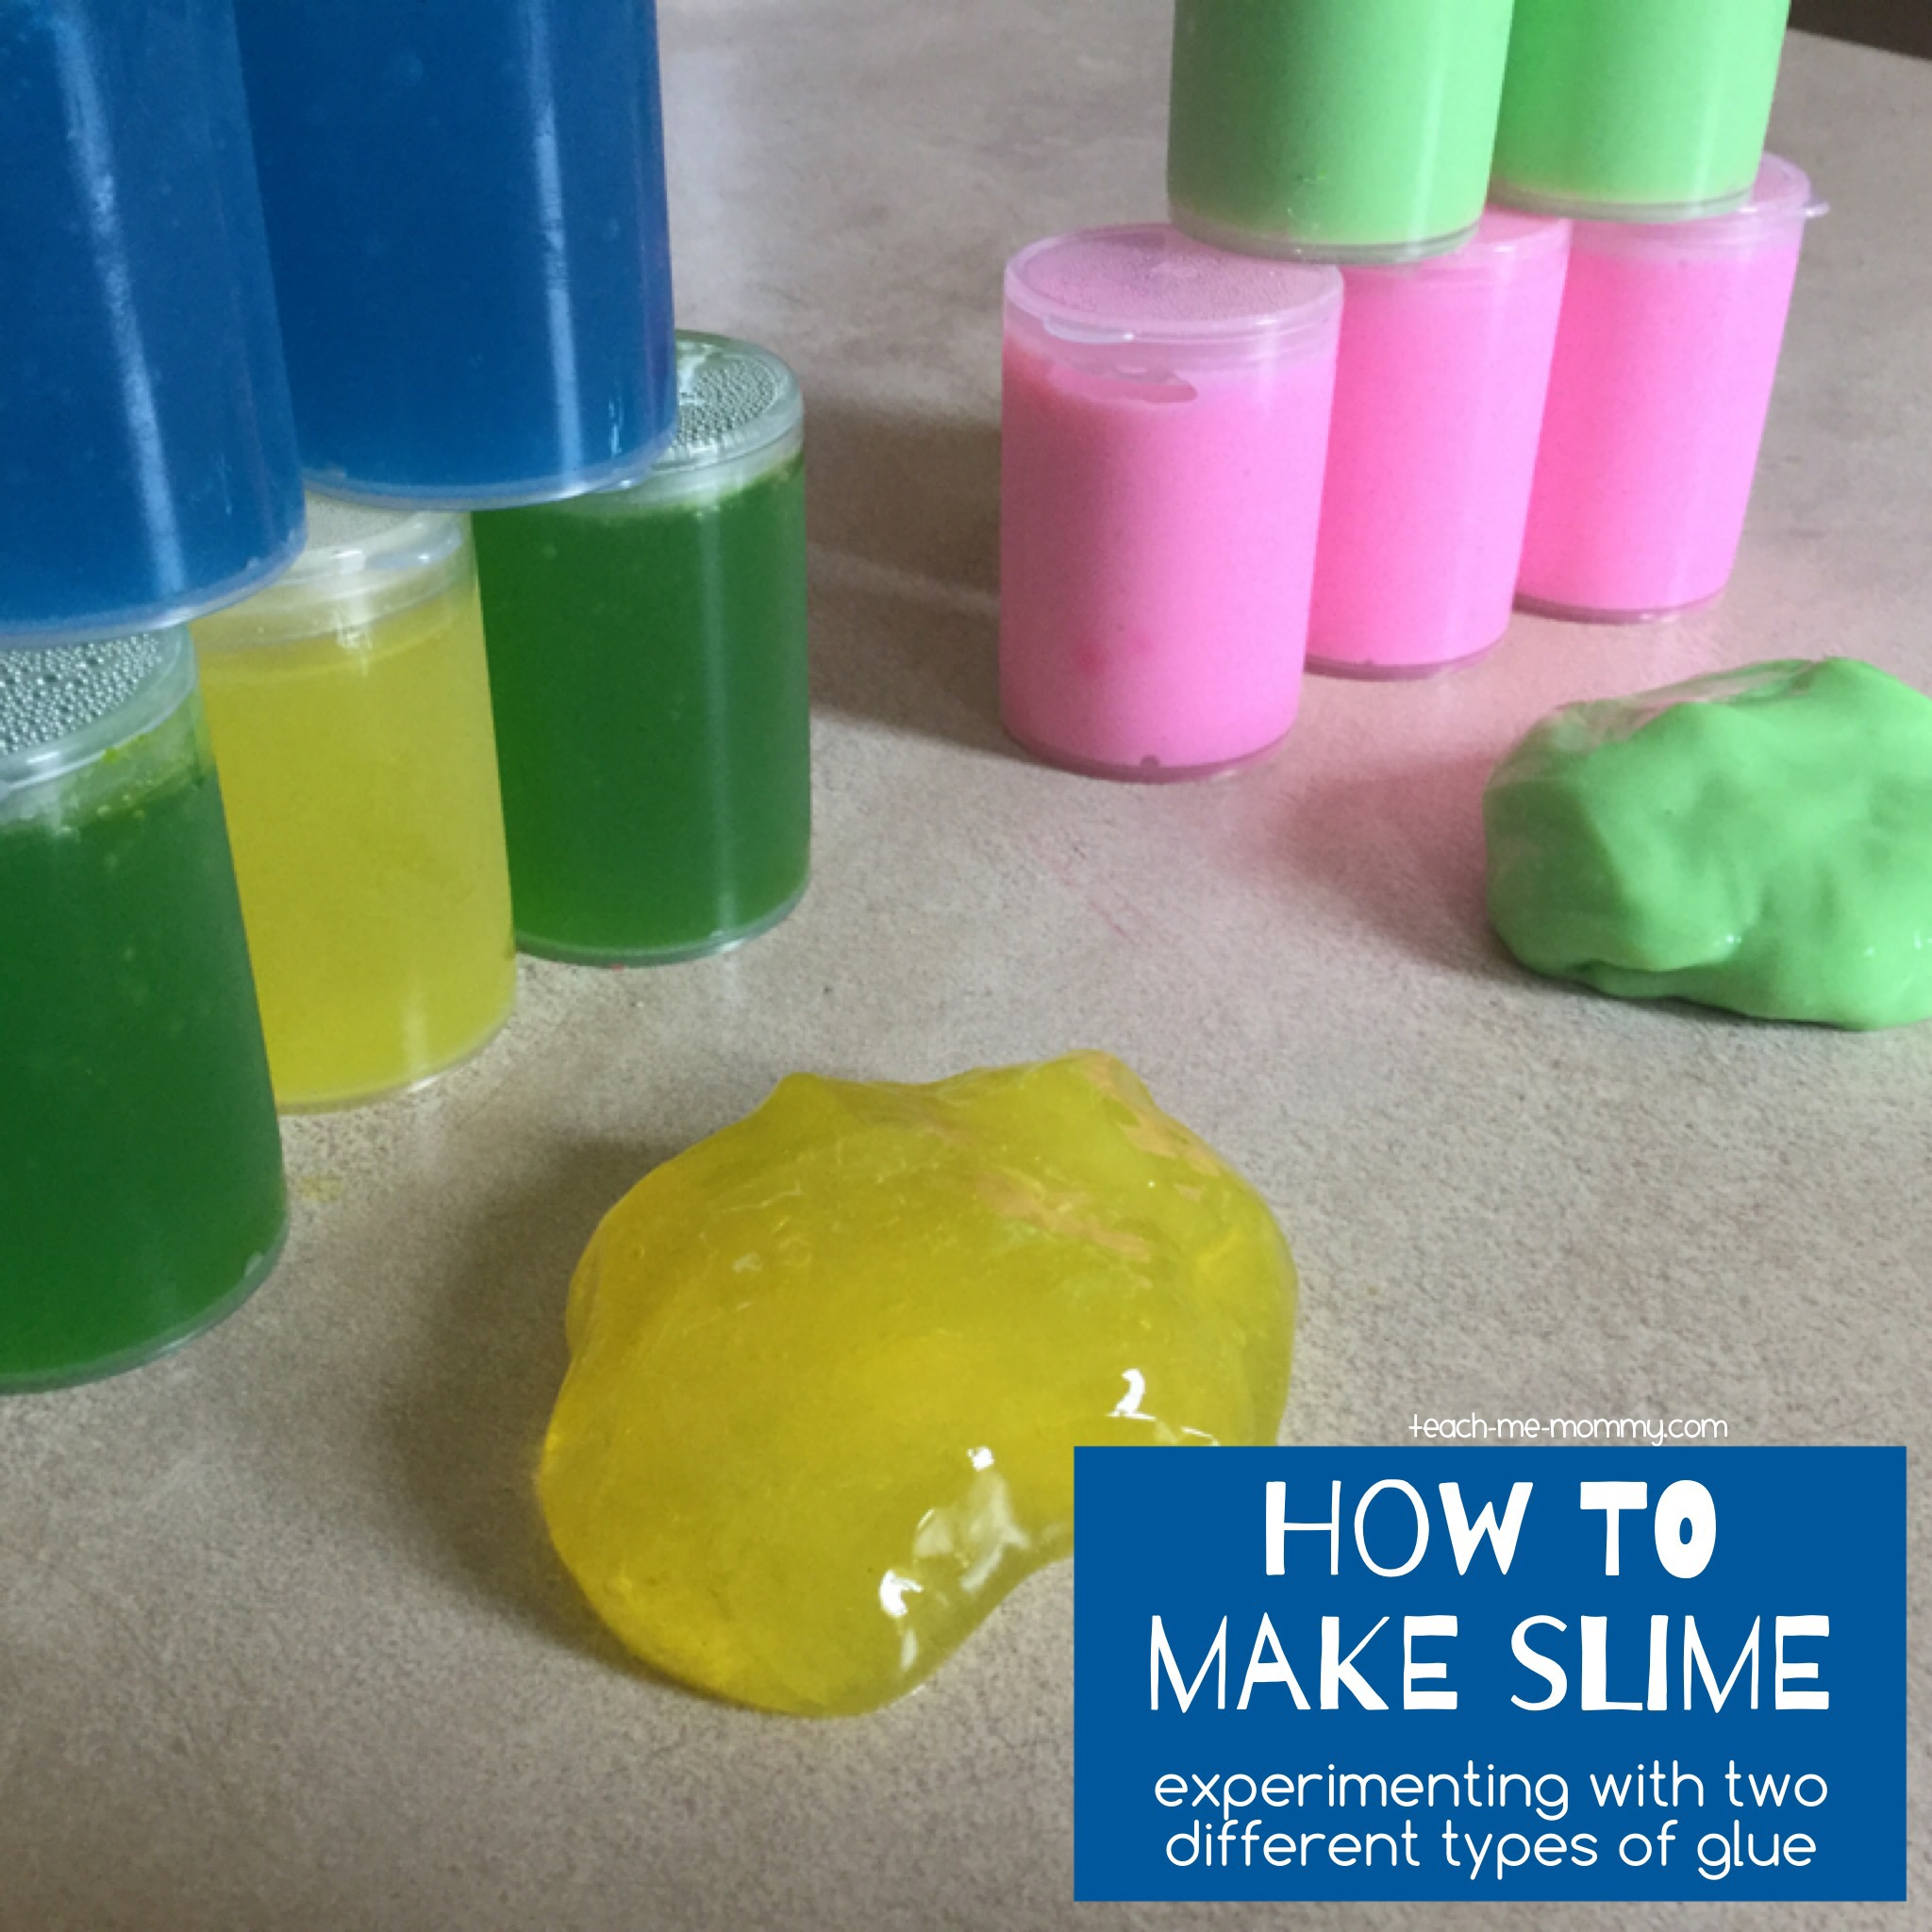 How to make slime - Teach Me Mommy - photo#5